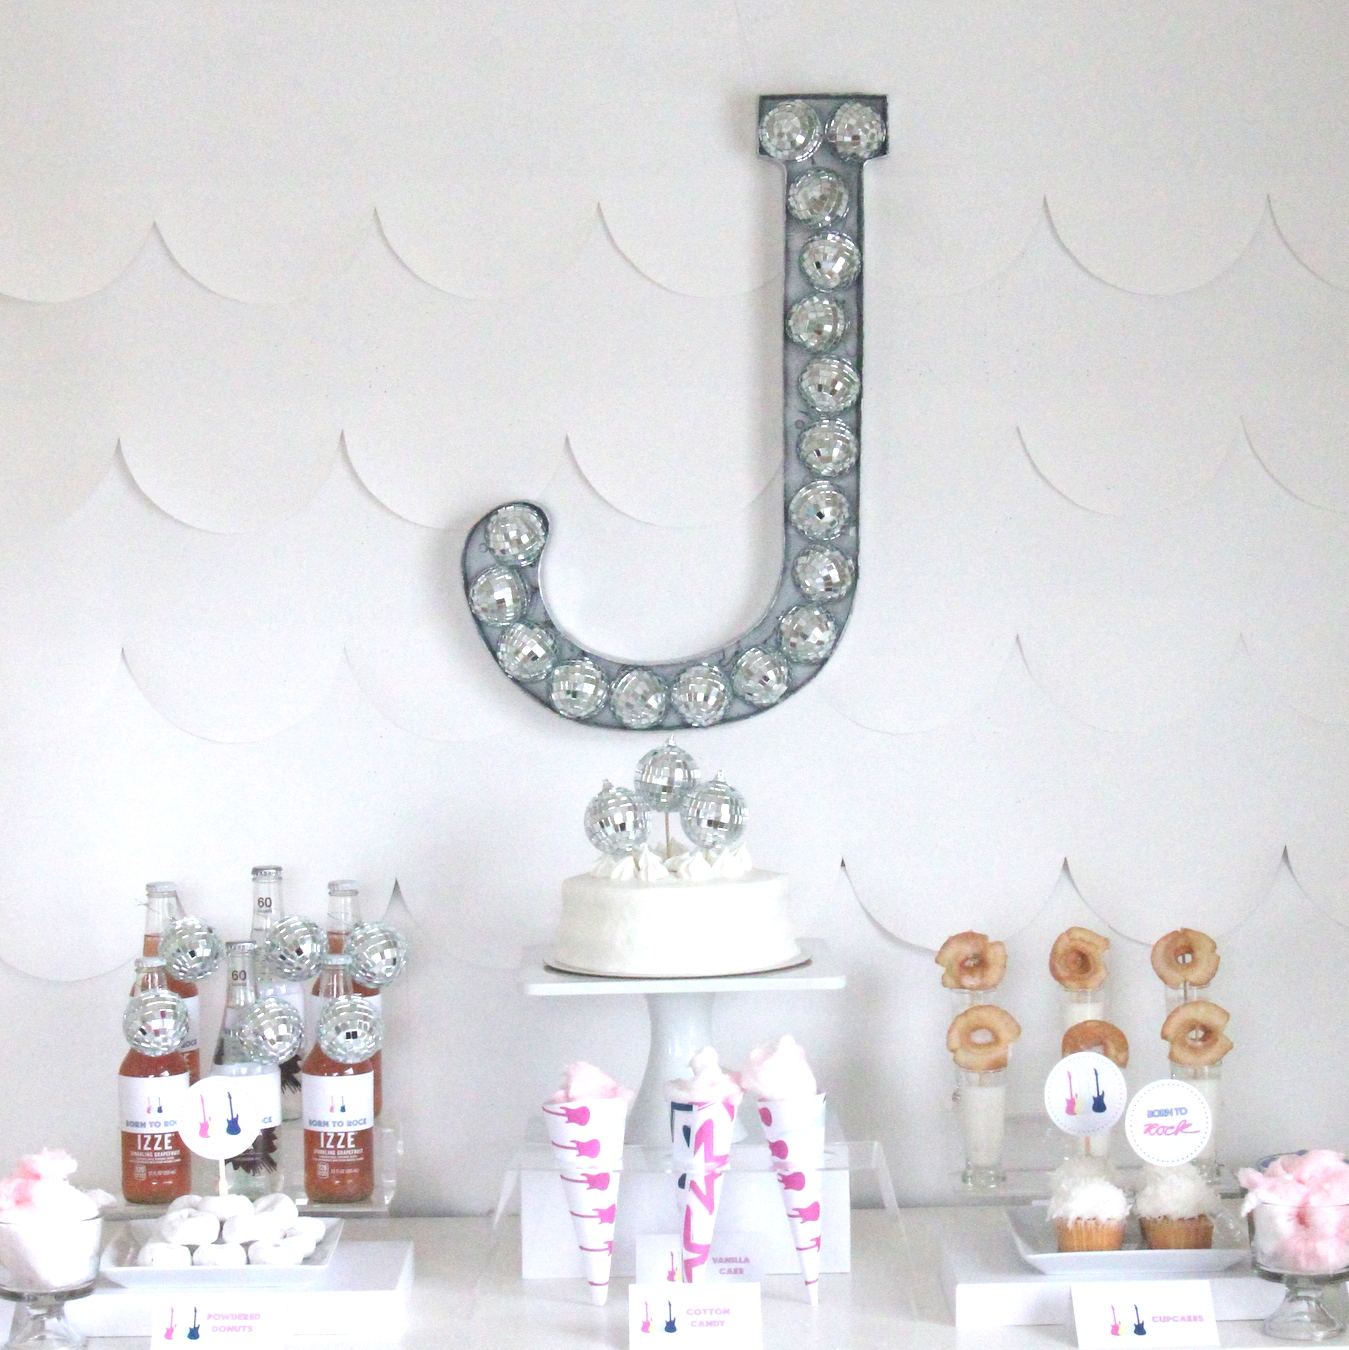 Time to party like a rock star! This sweet rock star birthday party includes all sorts of party decor and menu ideas!